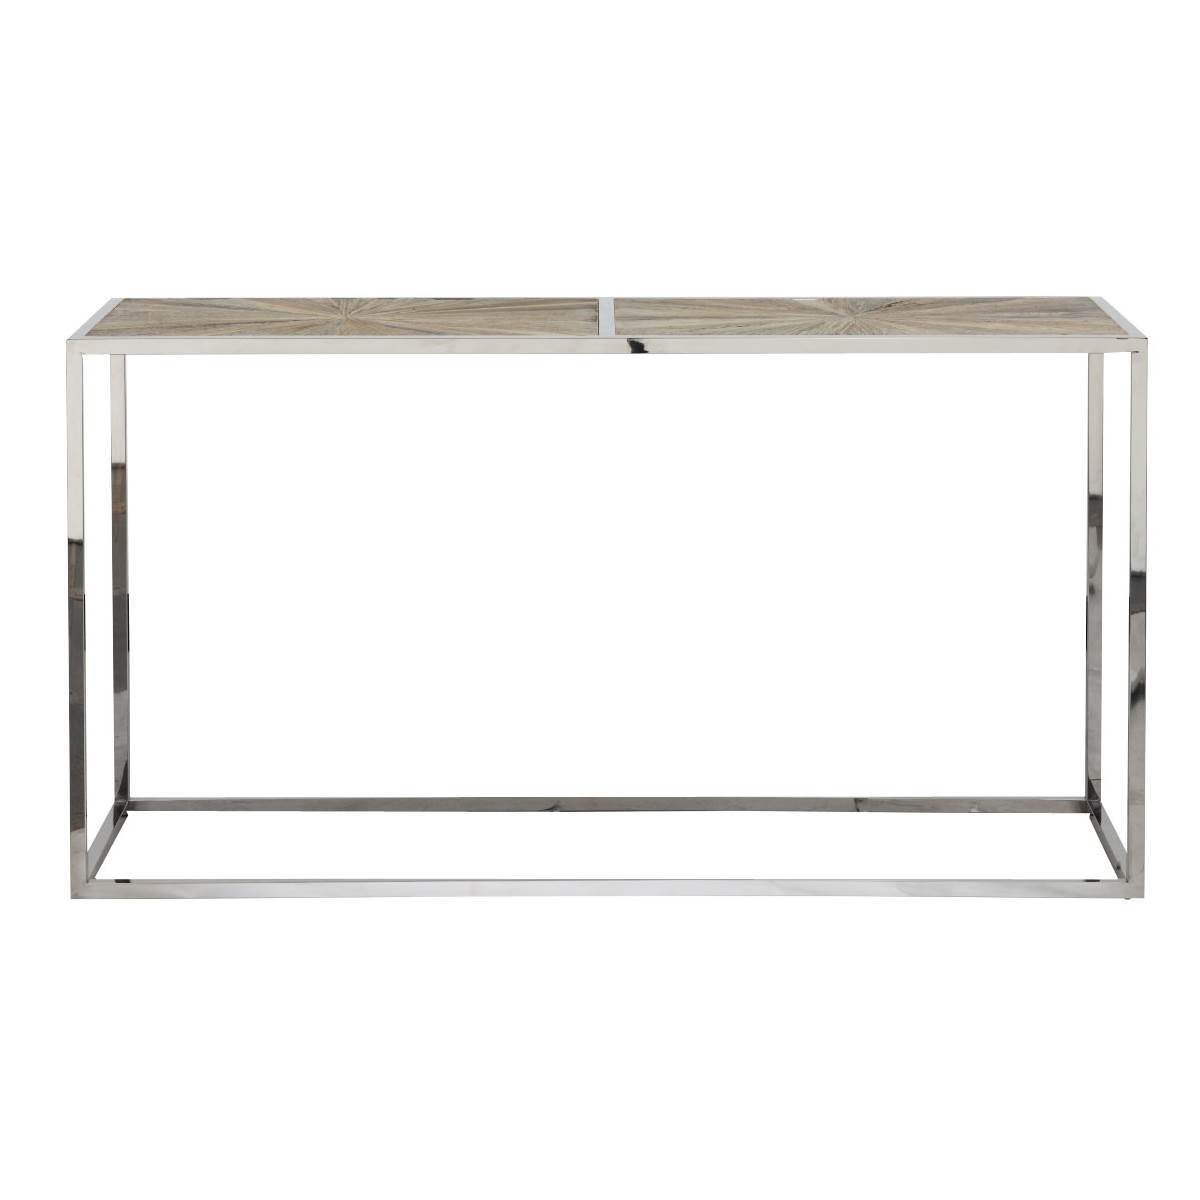 Parquet Console Table - Smoke Gray - 1